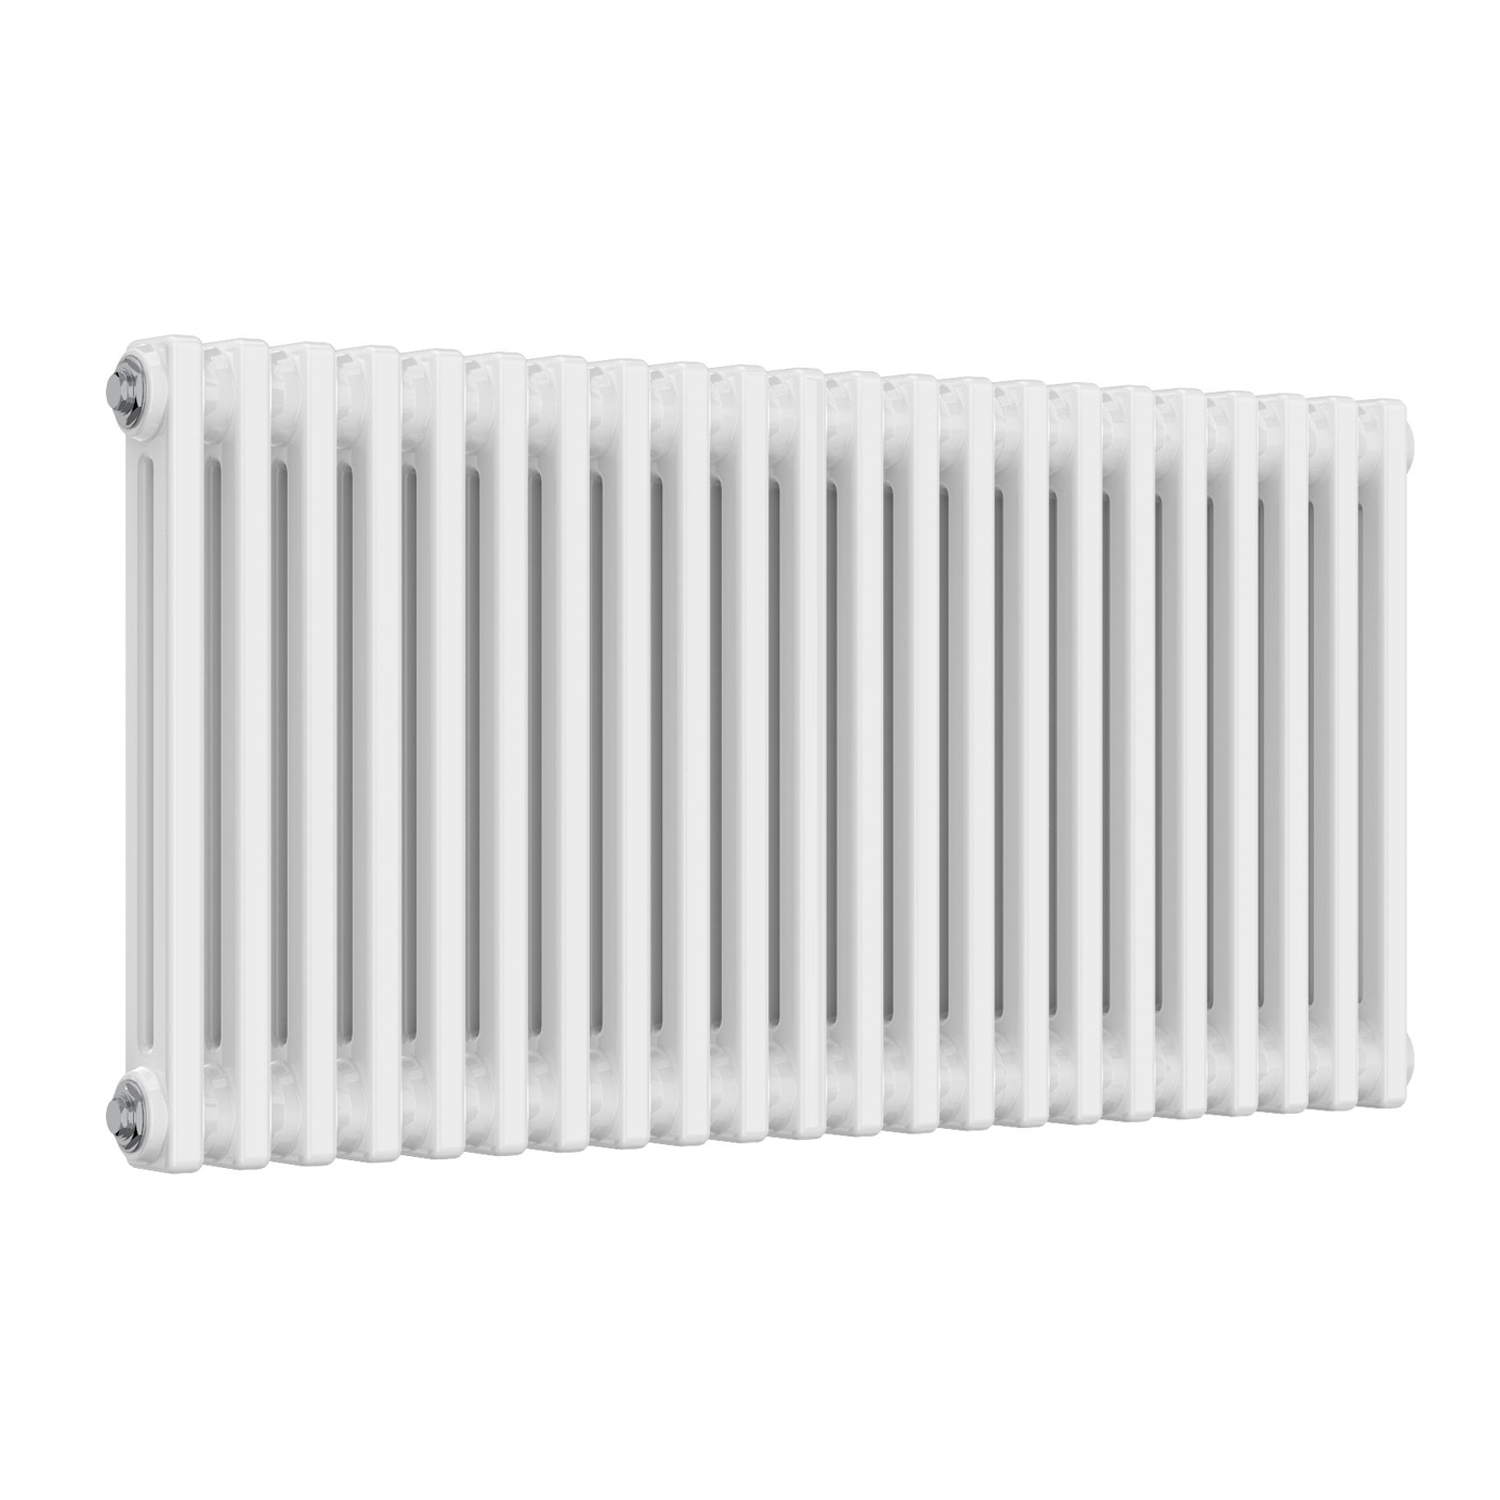 Stelrad Radical Radiator 500mm H x 400mm W Single Convector 15mm Straight TRV